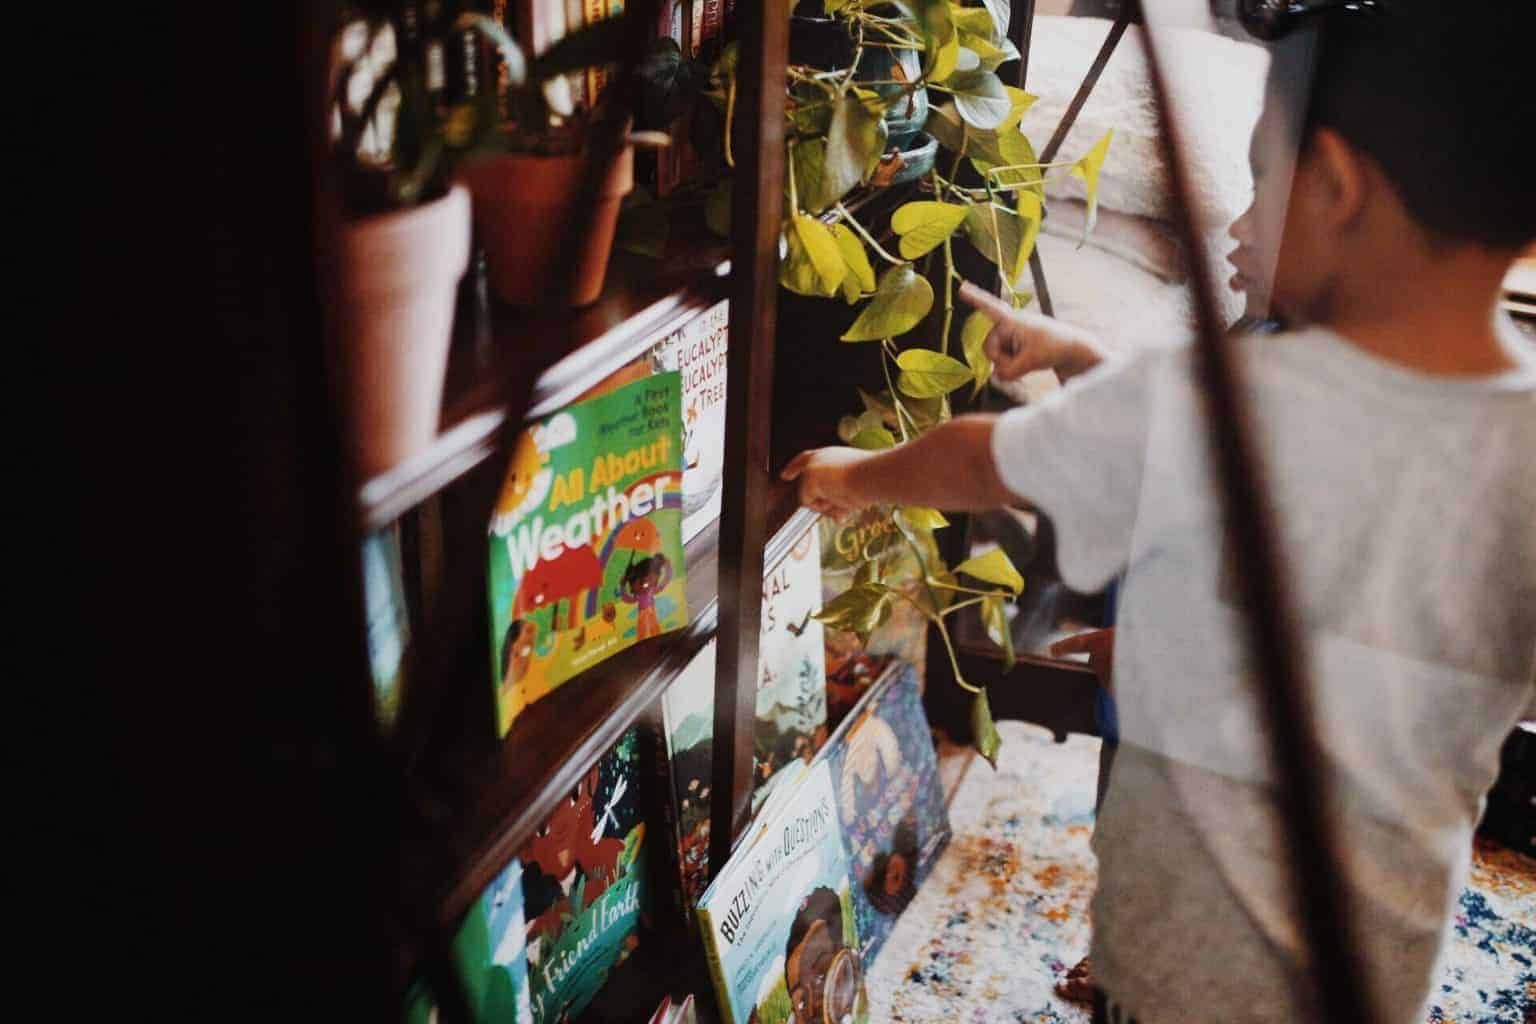 Creating a diverse nature book library for kids